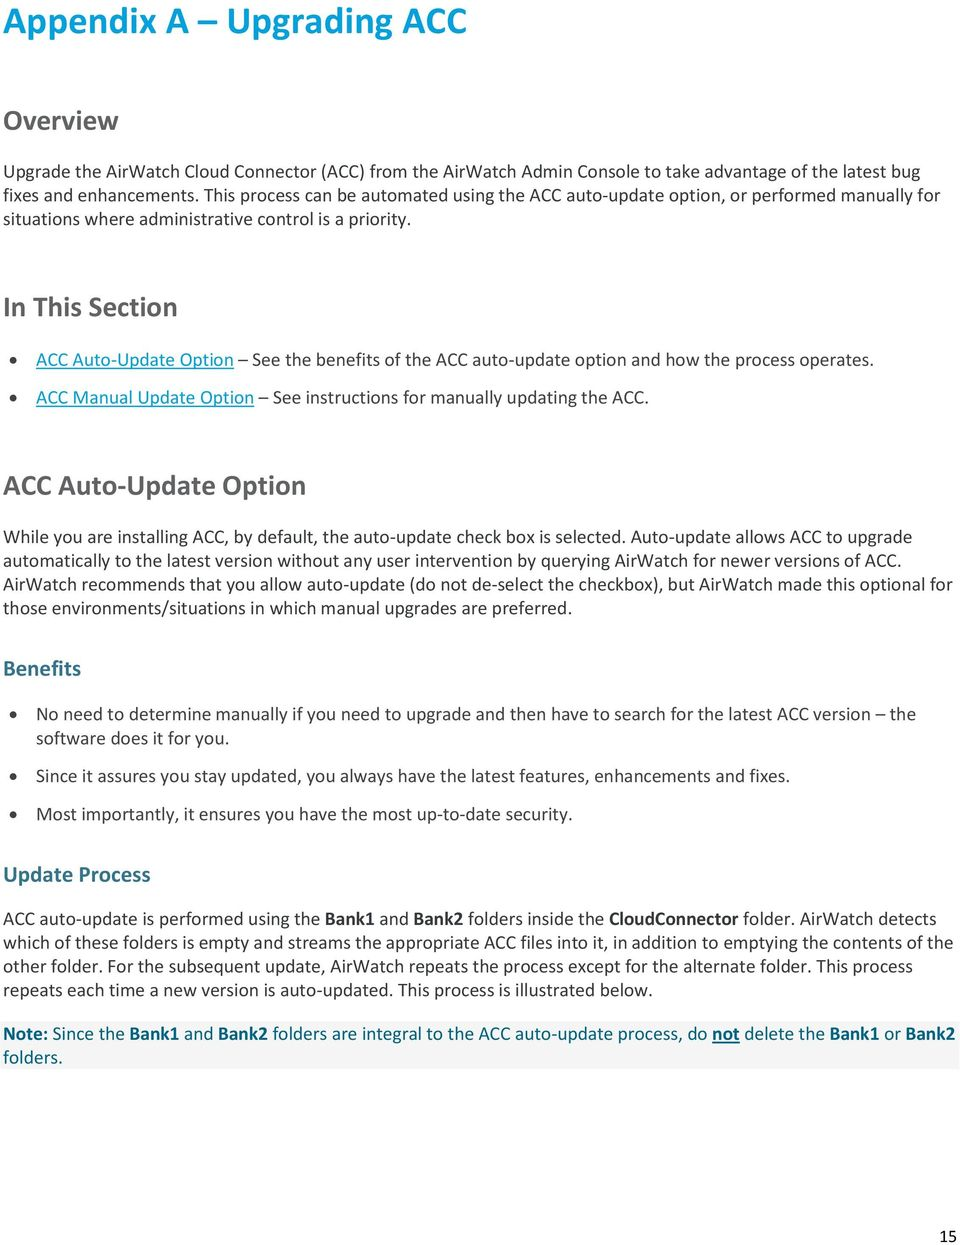 In This Section ACC Auto-Update Option See the benefits of the ACC auto-update option and how the process operates. ACC Manual Update Option See instructions for manually updating the ACC.